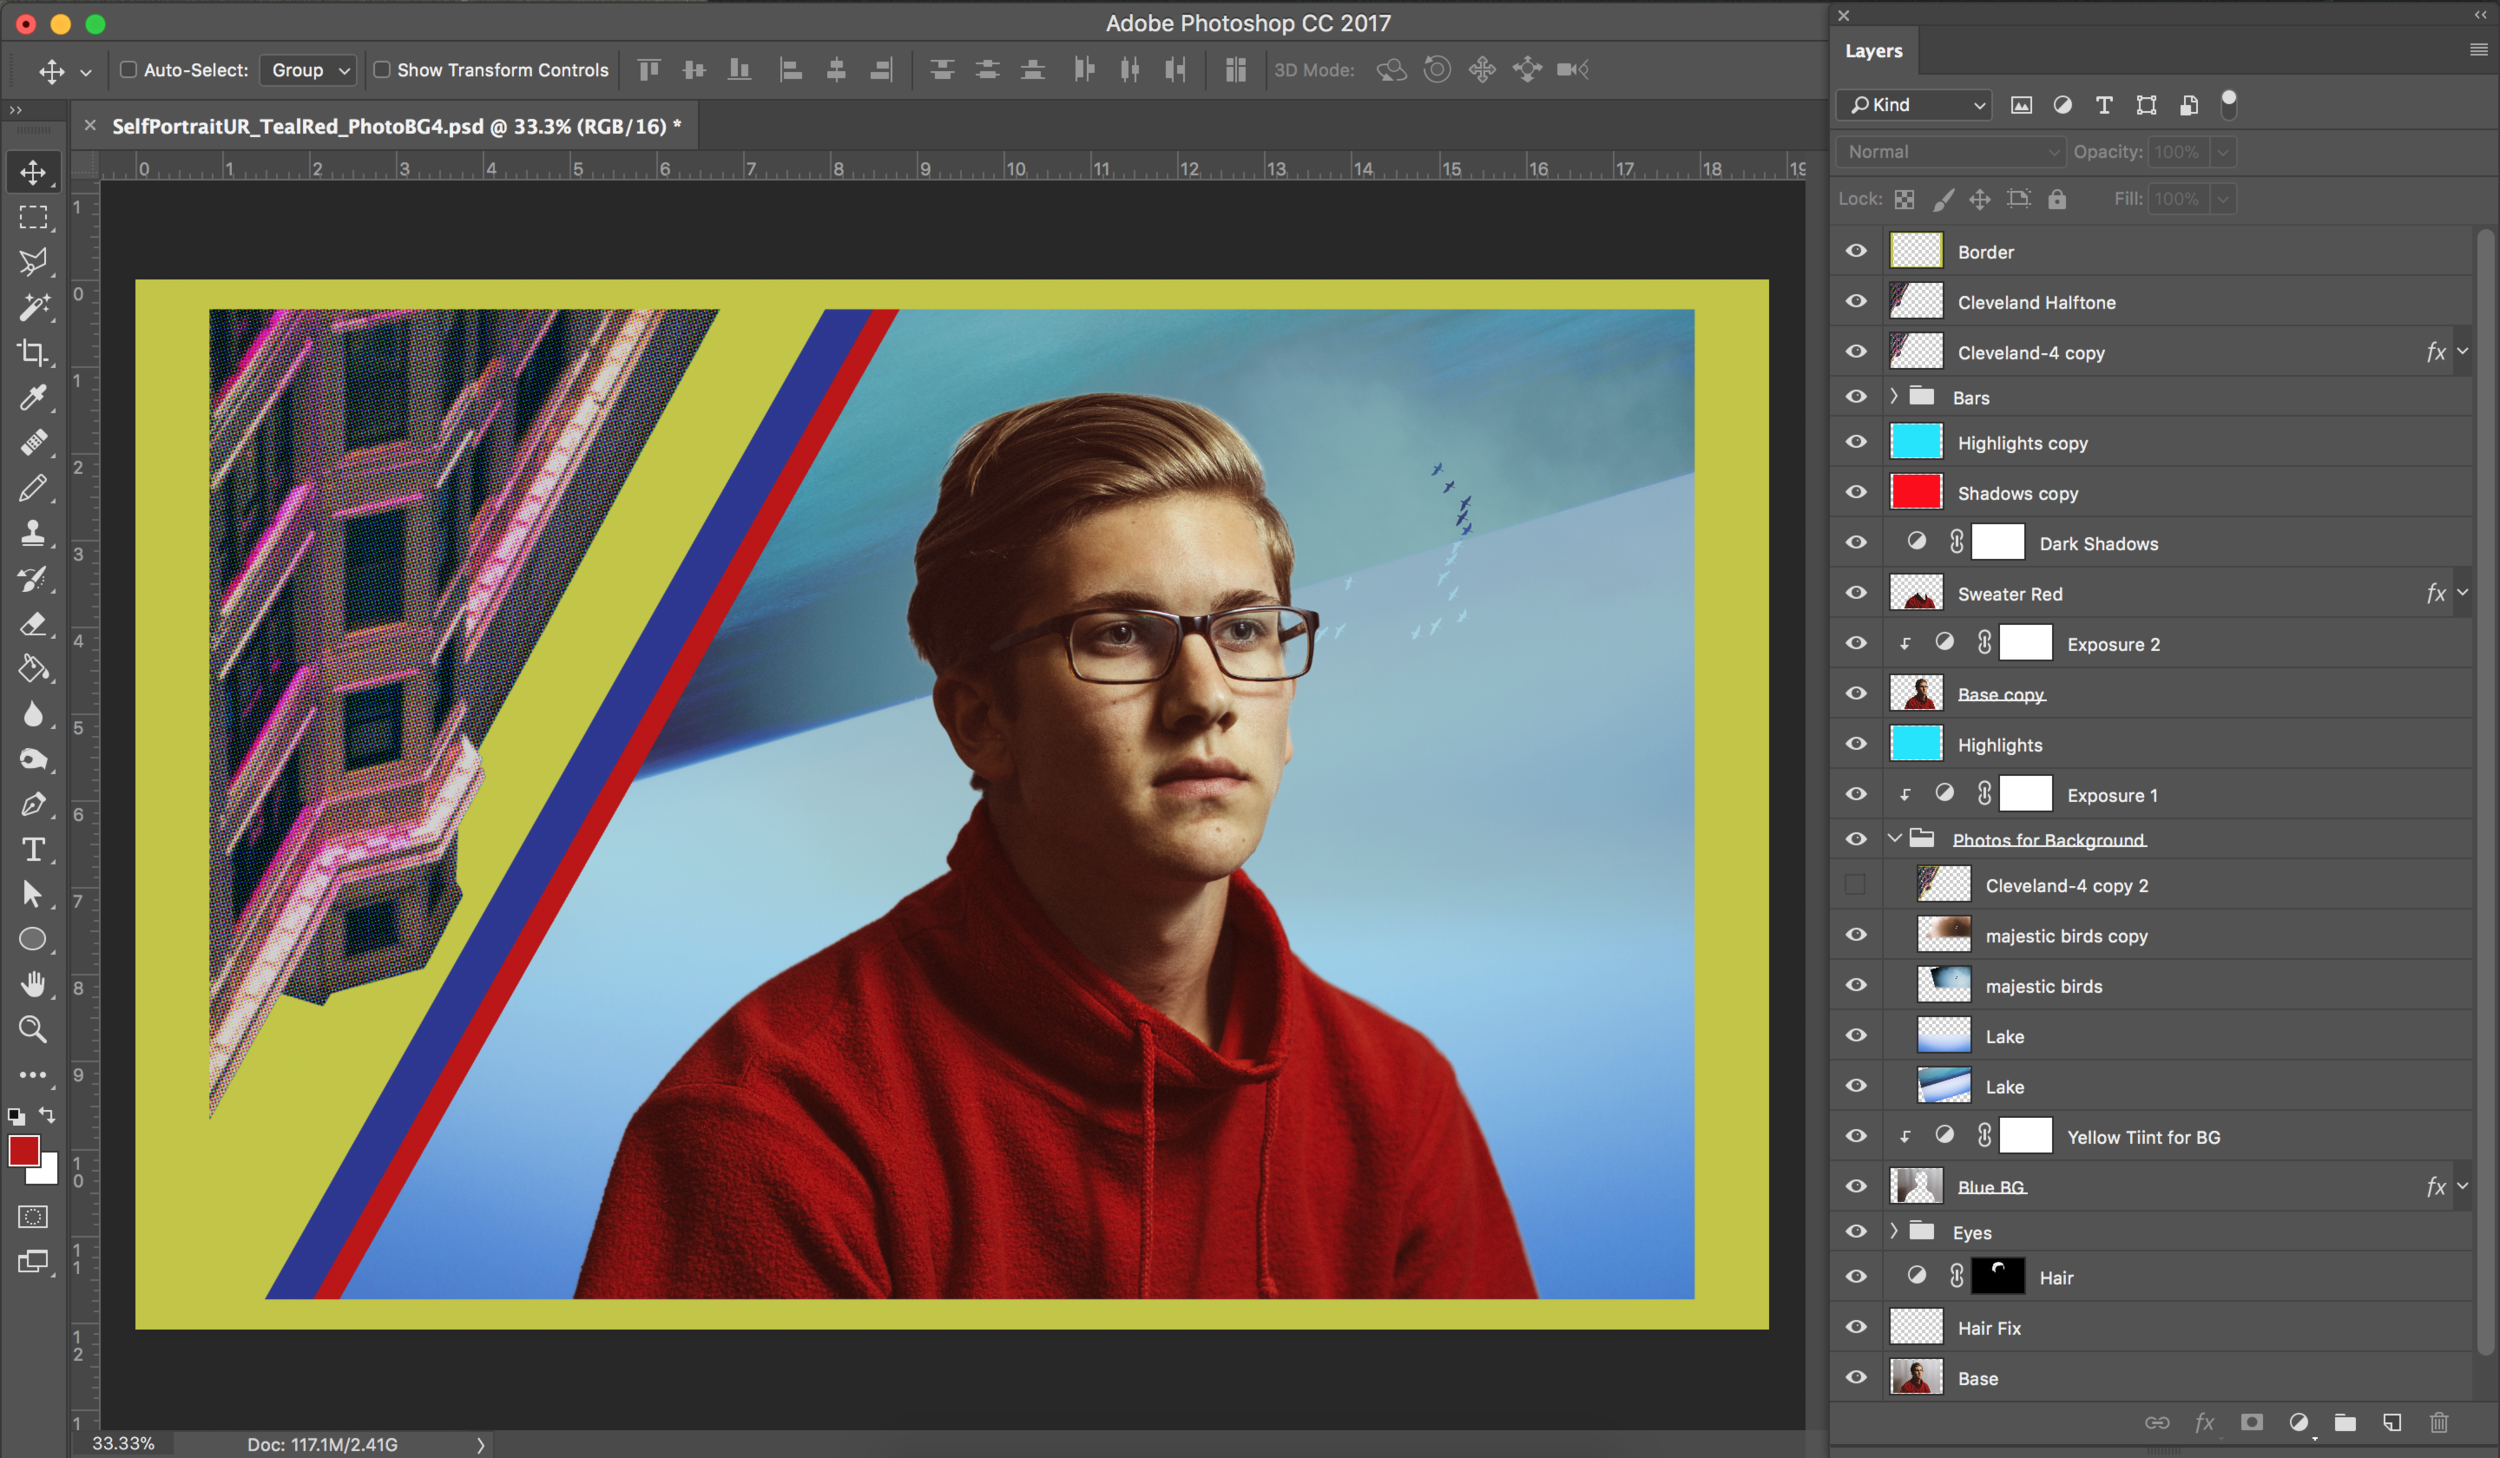 Final photo with layers and folders shown in Adobe Photoshop